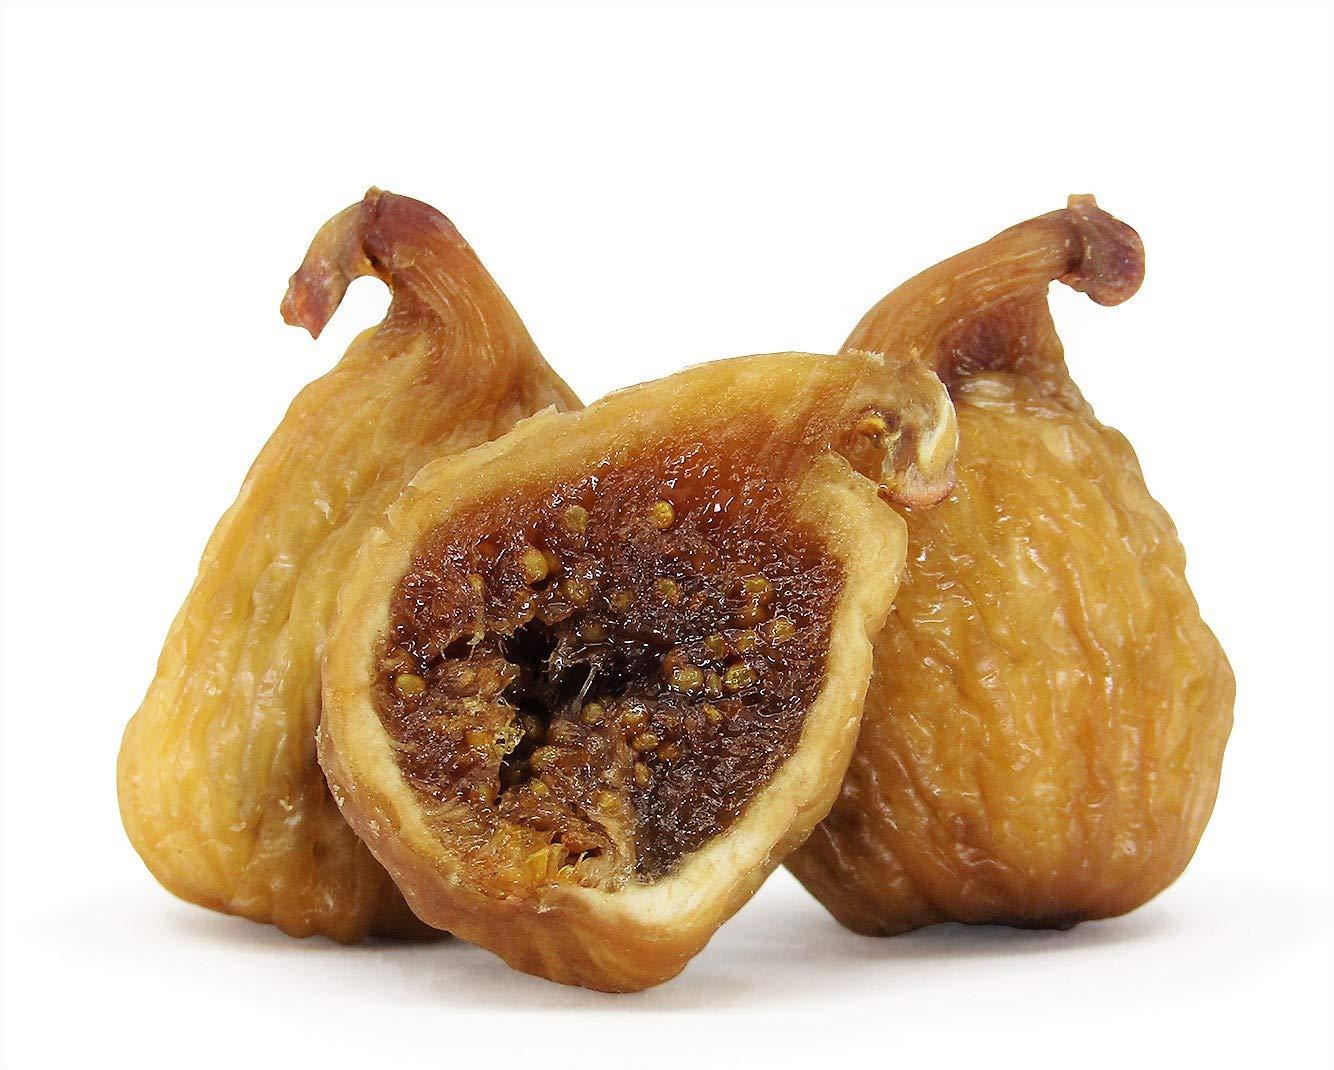 Dried low-pricing California White Figs by It's Fresh Bulk Latest item 10 Ca lbs Delish